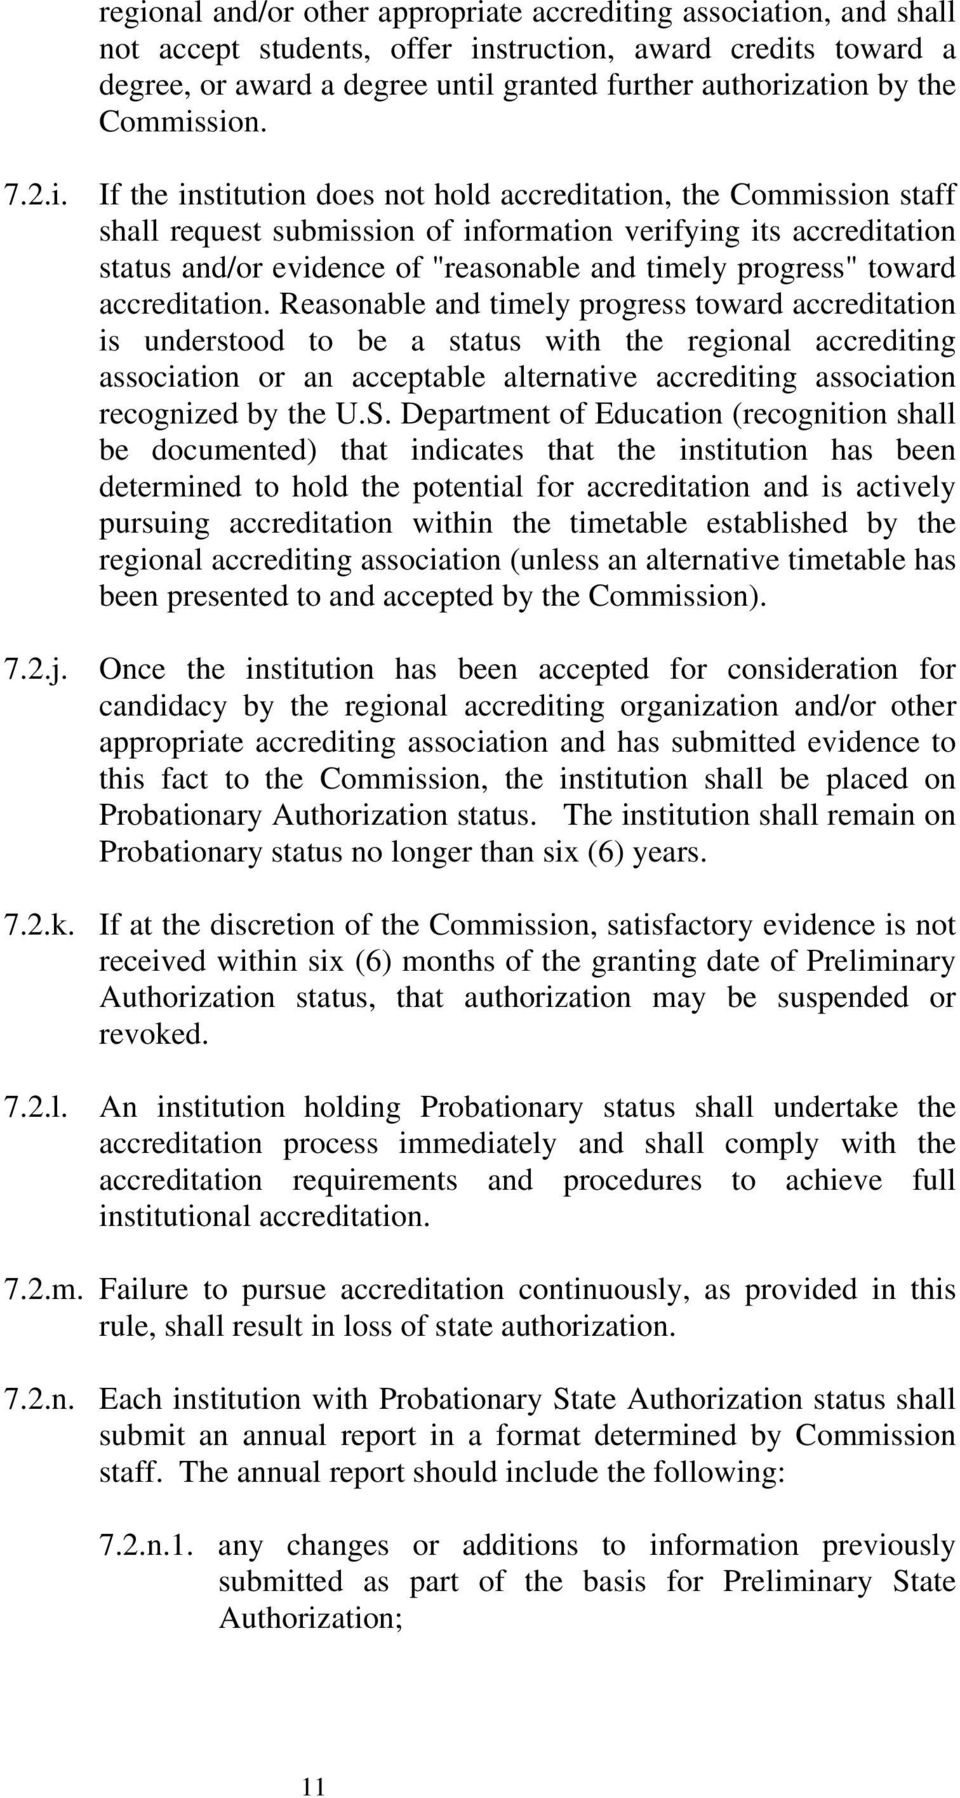 "sion. 7.2.i. If the institution does not hold accreditation, sion staff shall request submission of information verifying its accreditation status and/or evidence of ""reasonable and timely progress"""